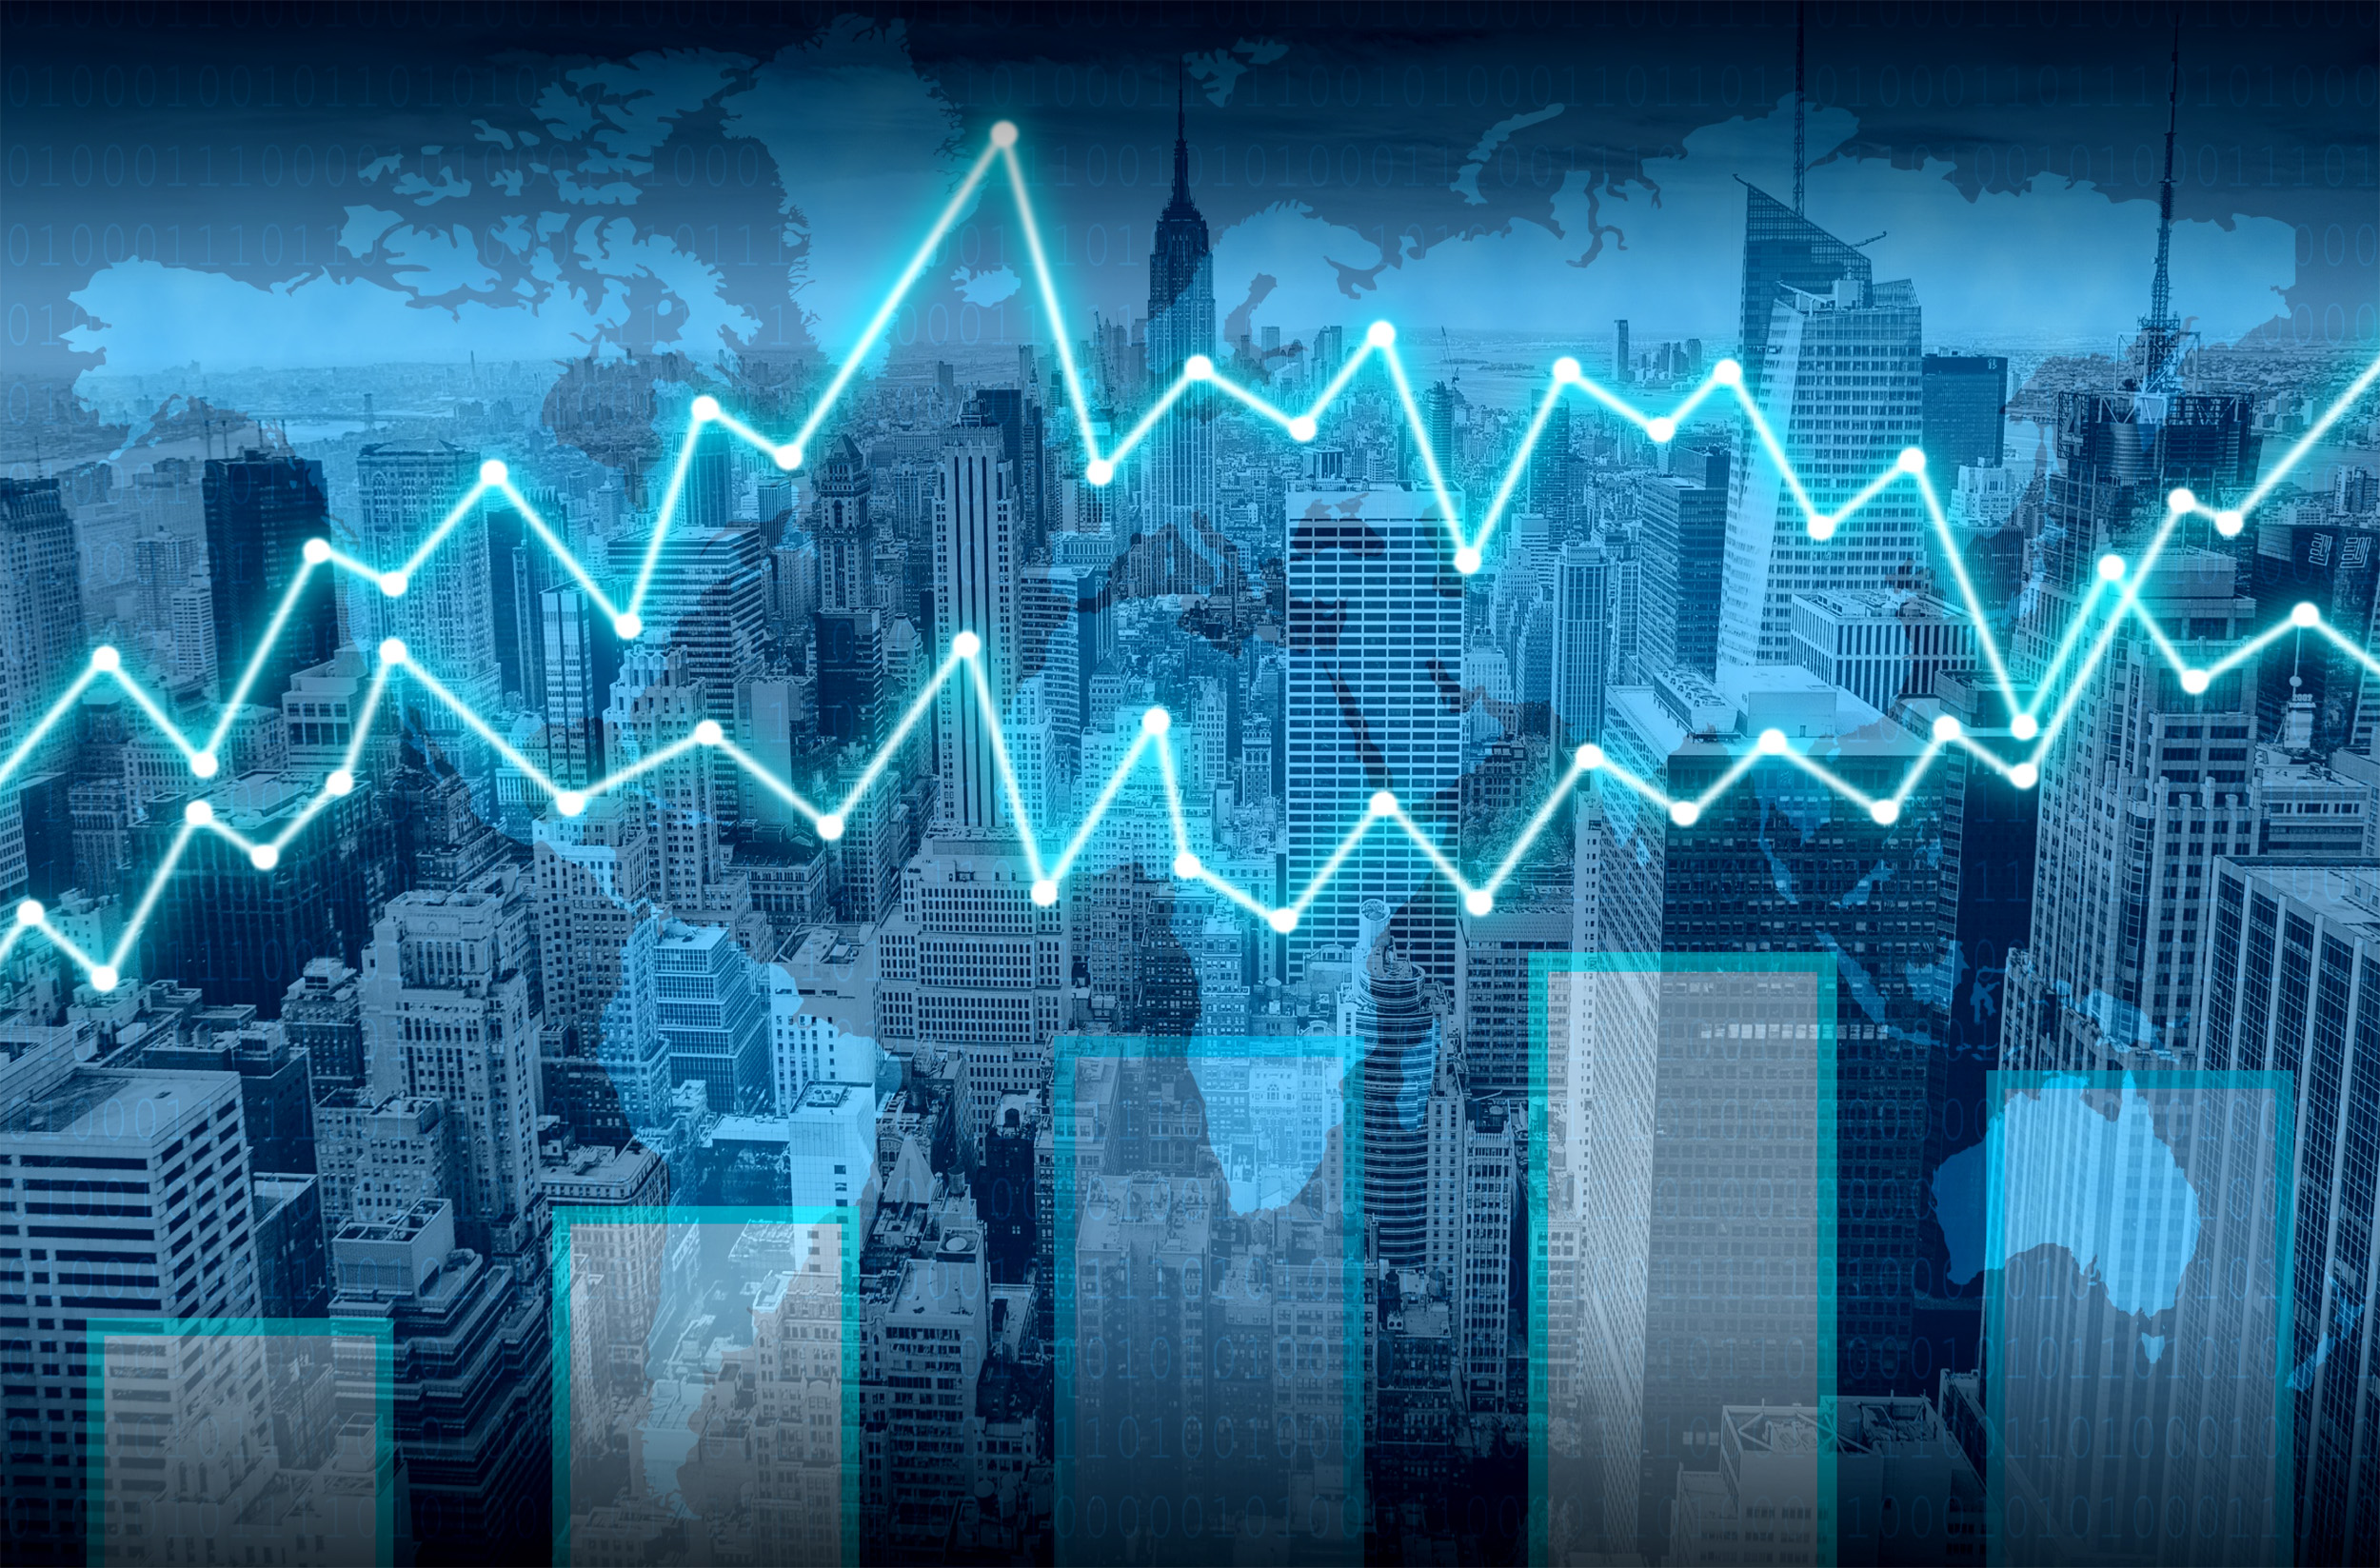 Finance graph superimposed on Manhattan, Manager, Night, New, Monitoring, HQ Photo